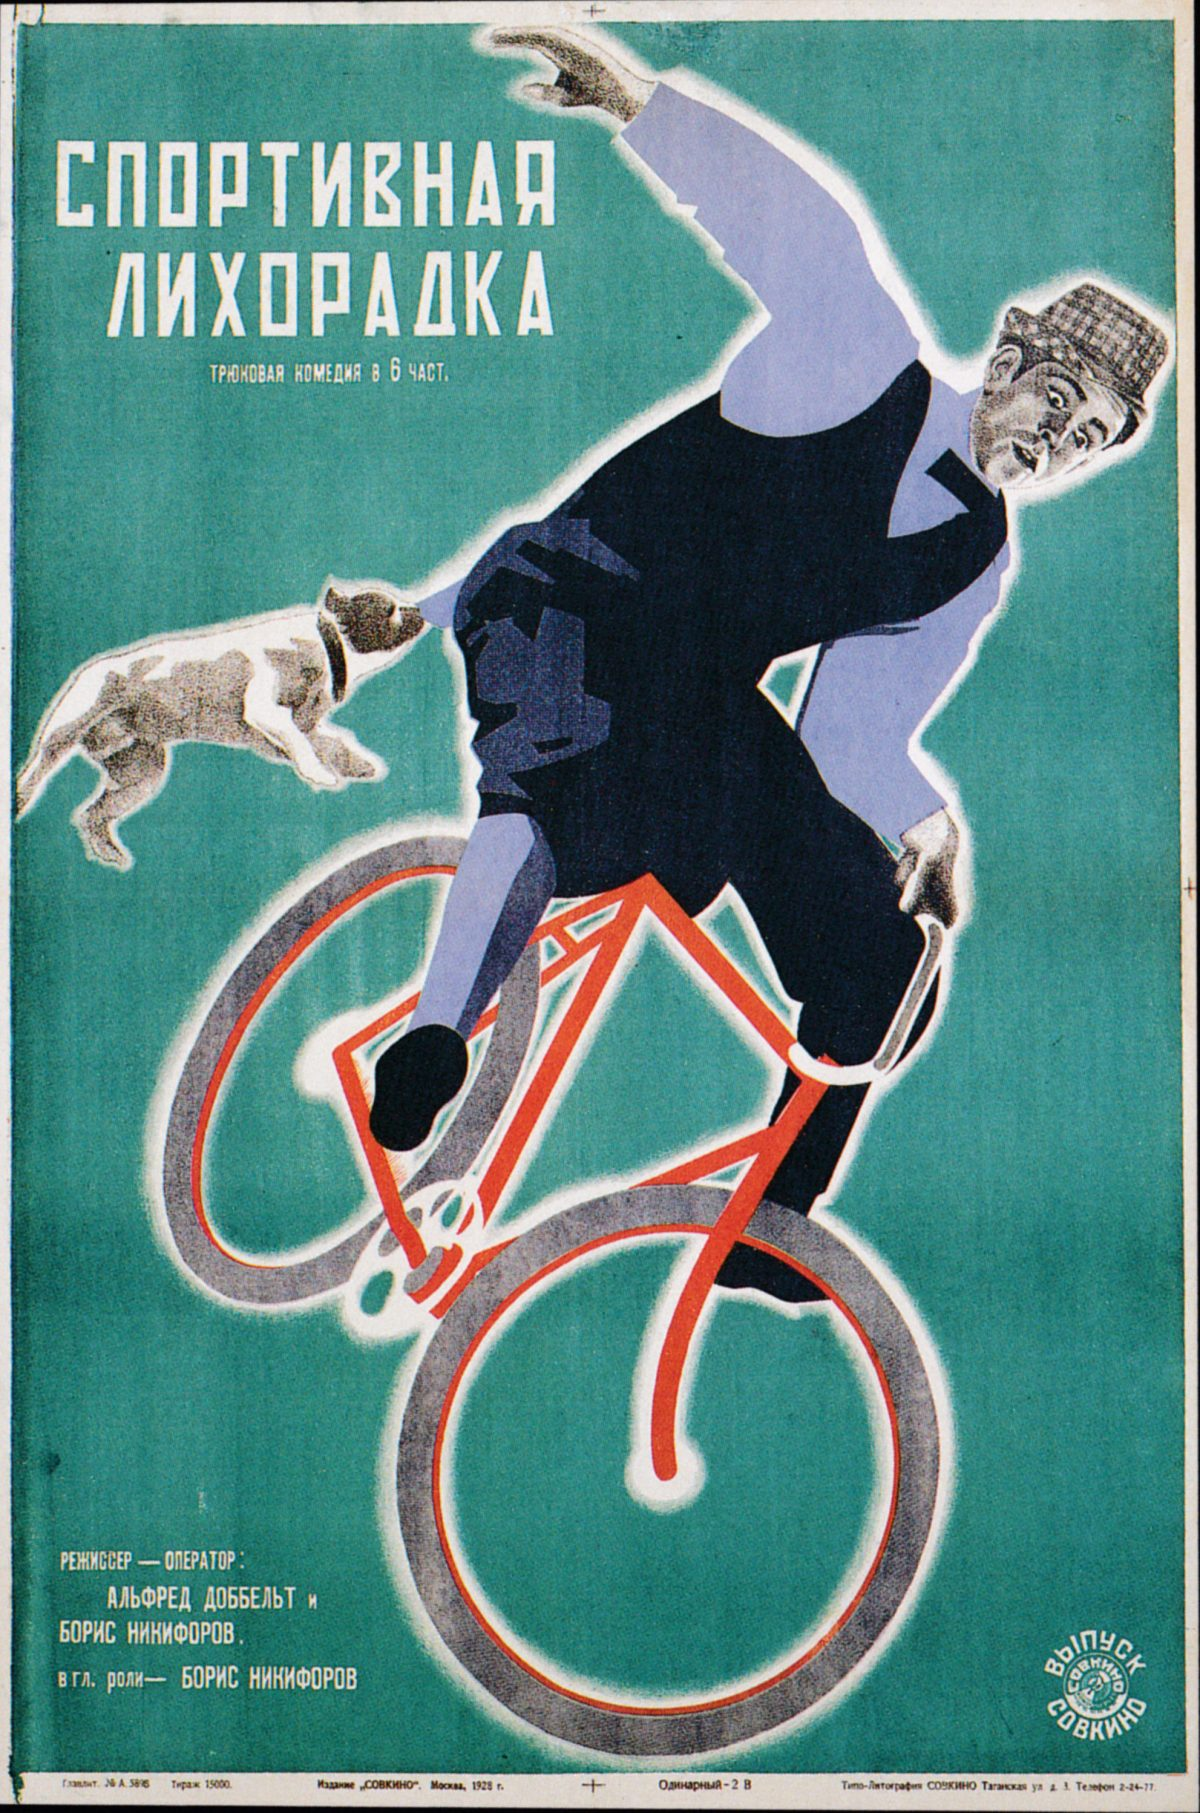 Soviet Union movie poster